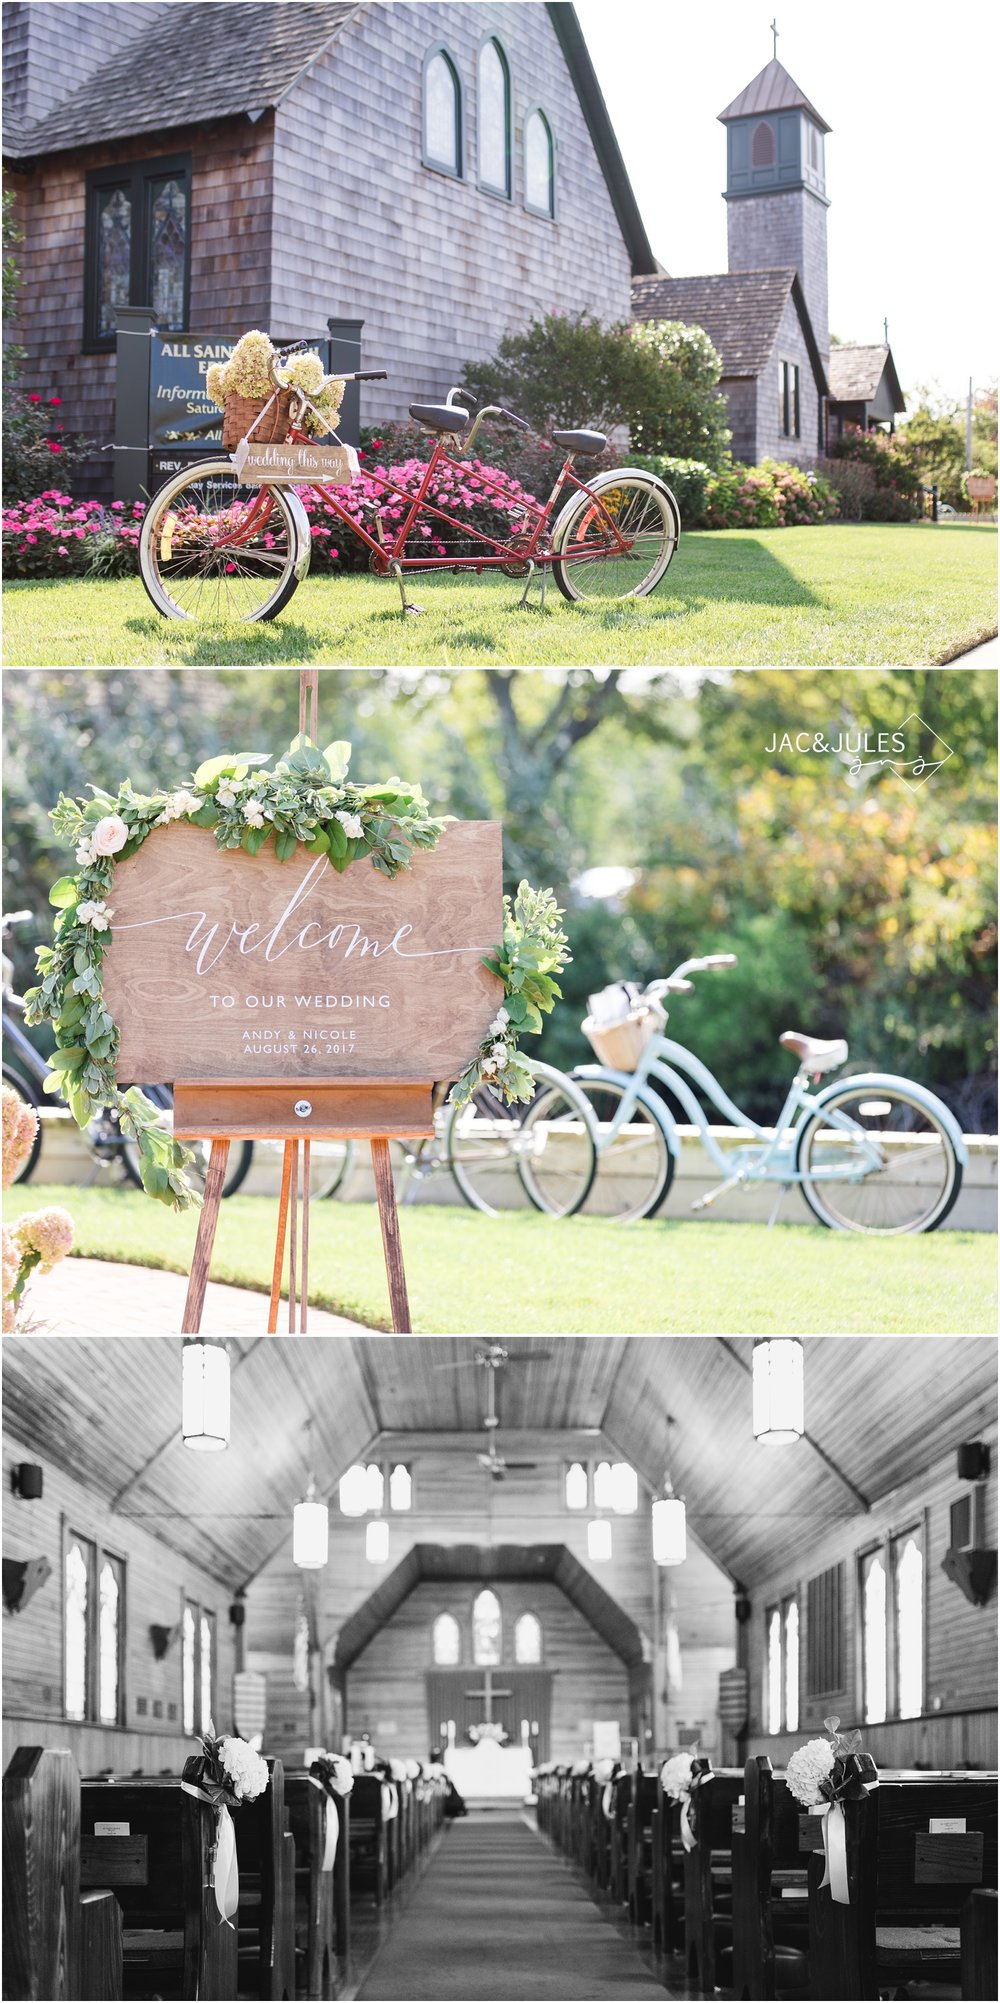 Bicycle and Wedding sign decor at All Saints Church in Bay Head, NJ.